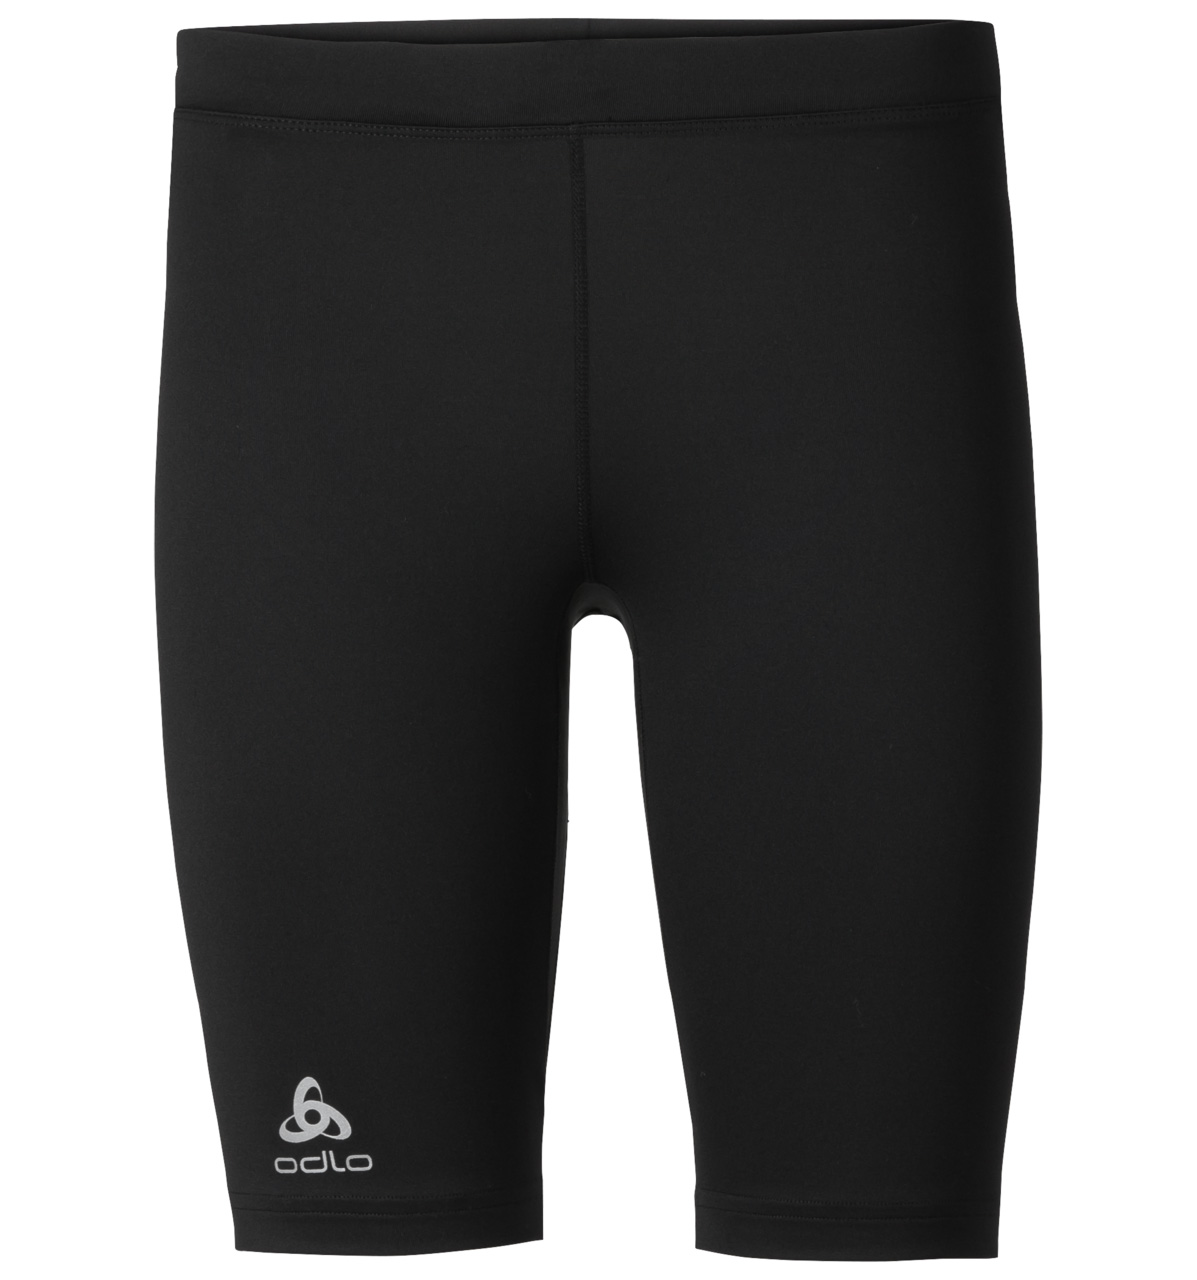 Odlo herre tights lange - Sliq Active Run - Sort | Bukser